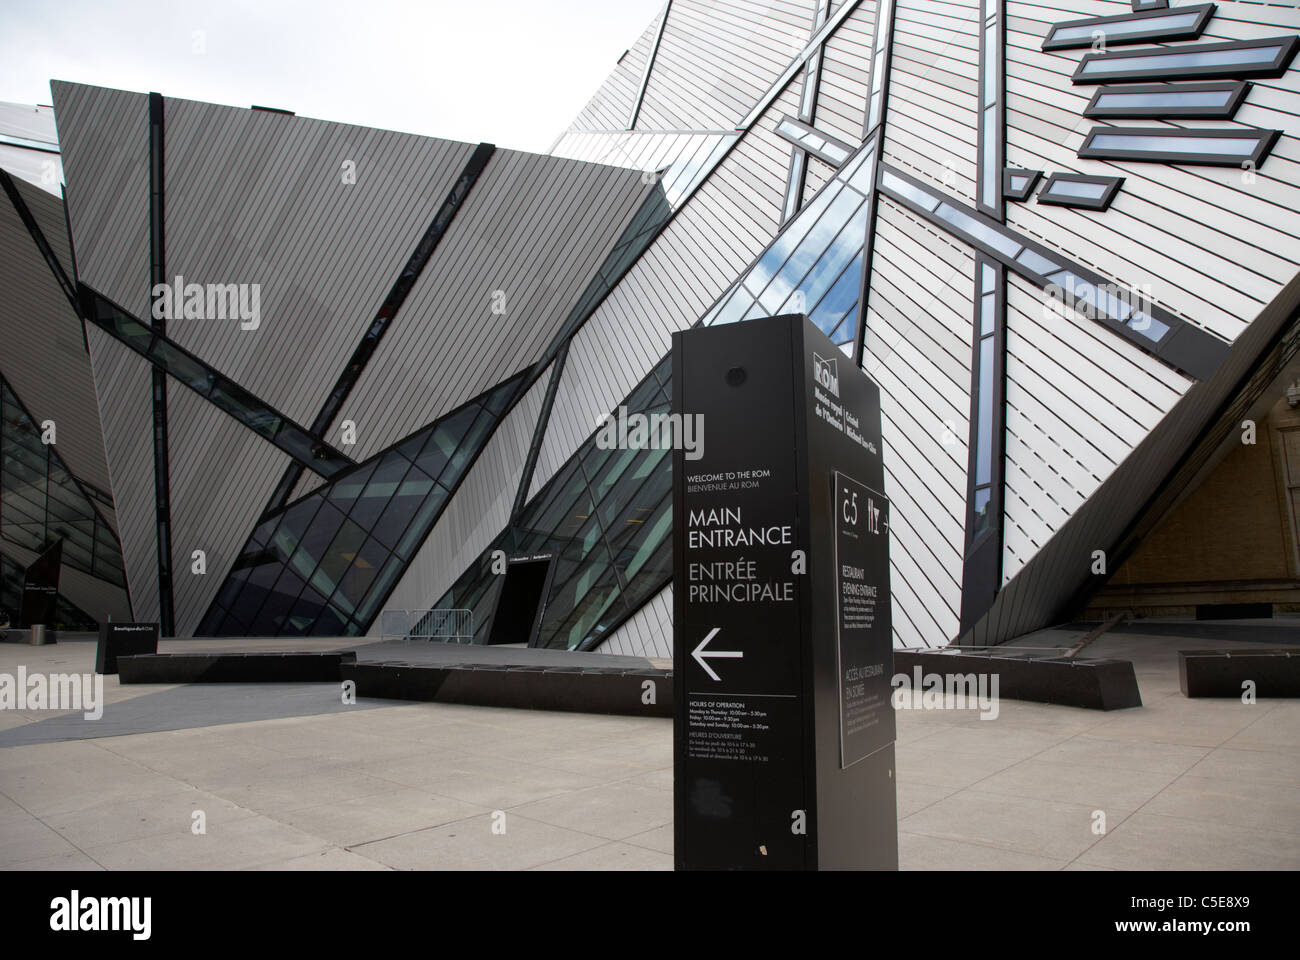 the crystal main entrance to the ROM royal Ontario Museum building toronto ontario canada - Stock Image